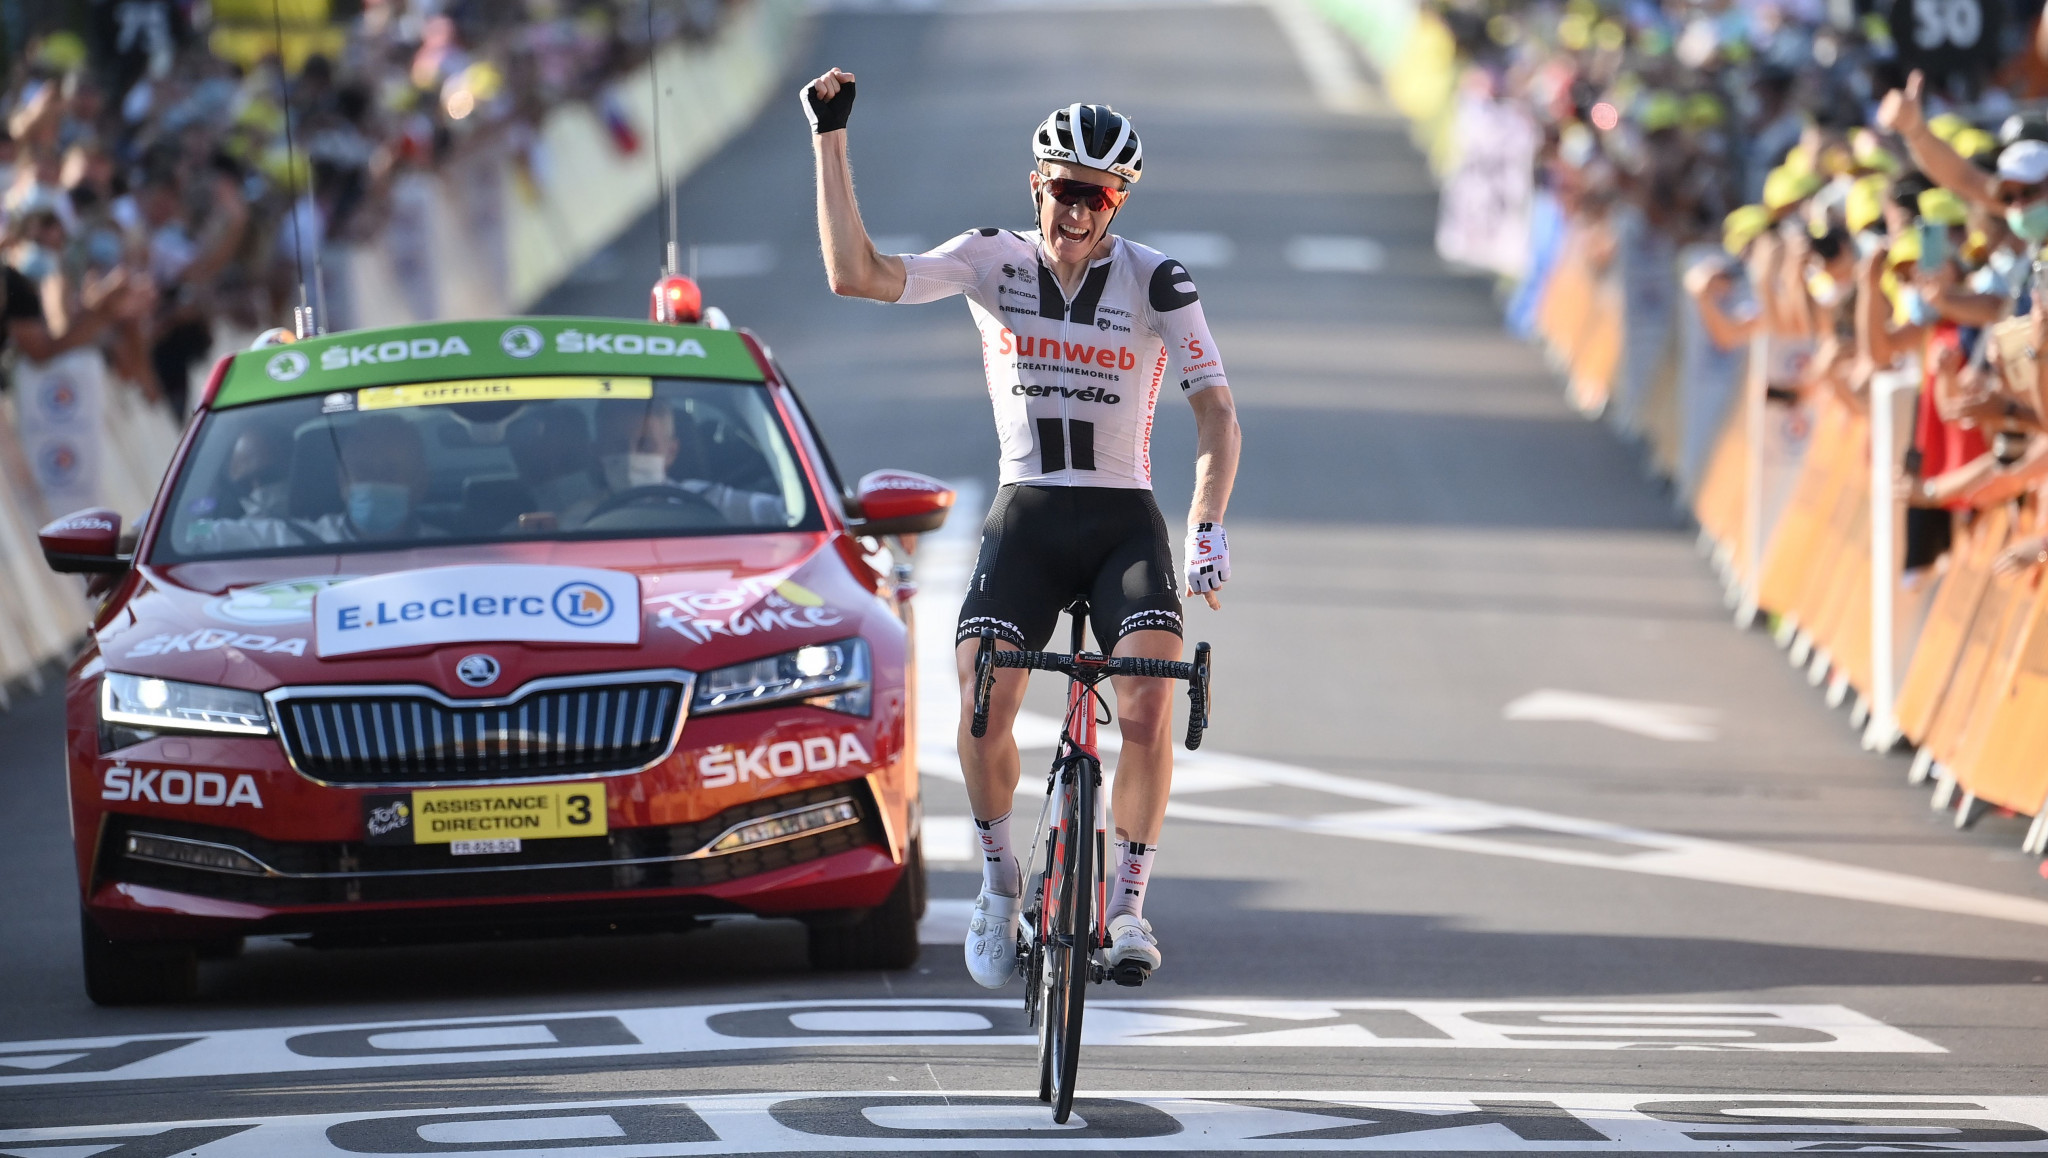 Andersen escapes again to secure second Tour de France stage victory